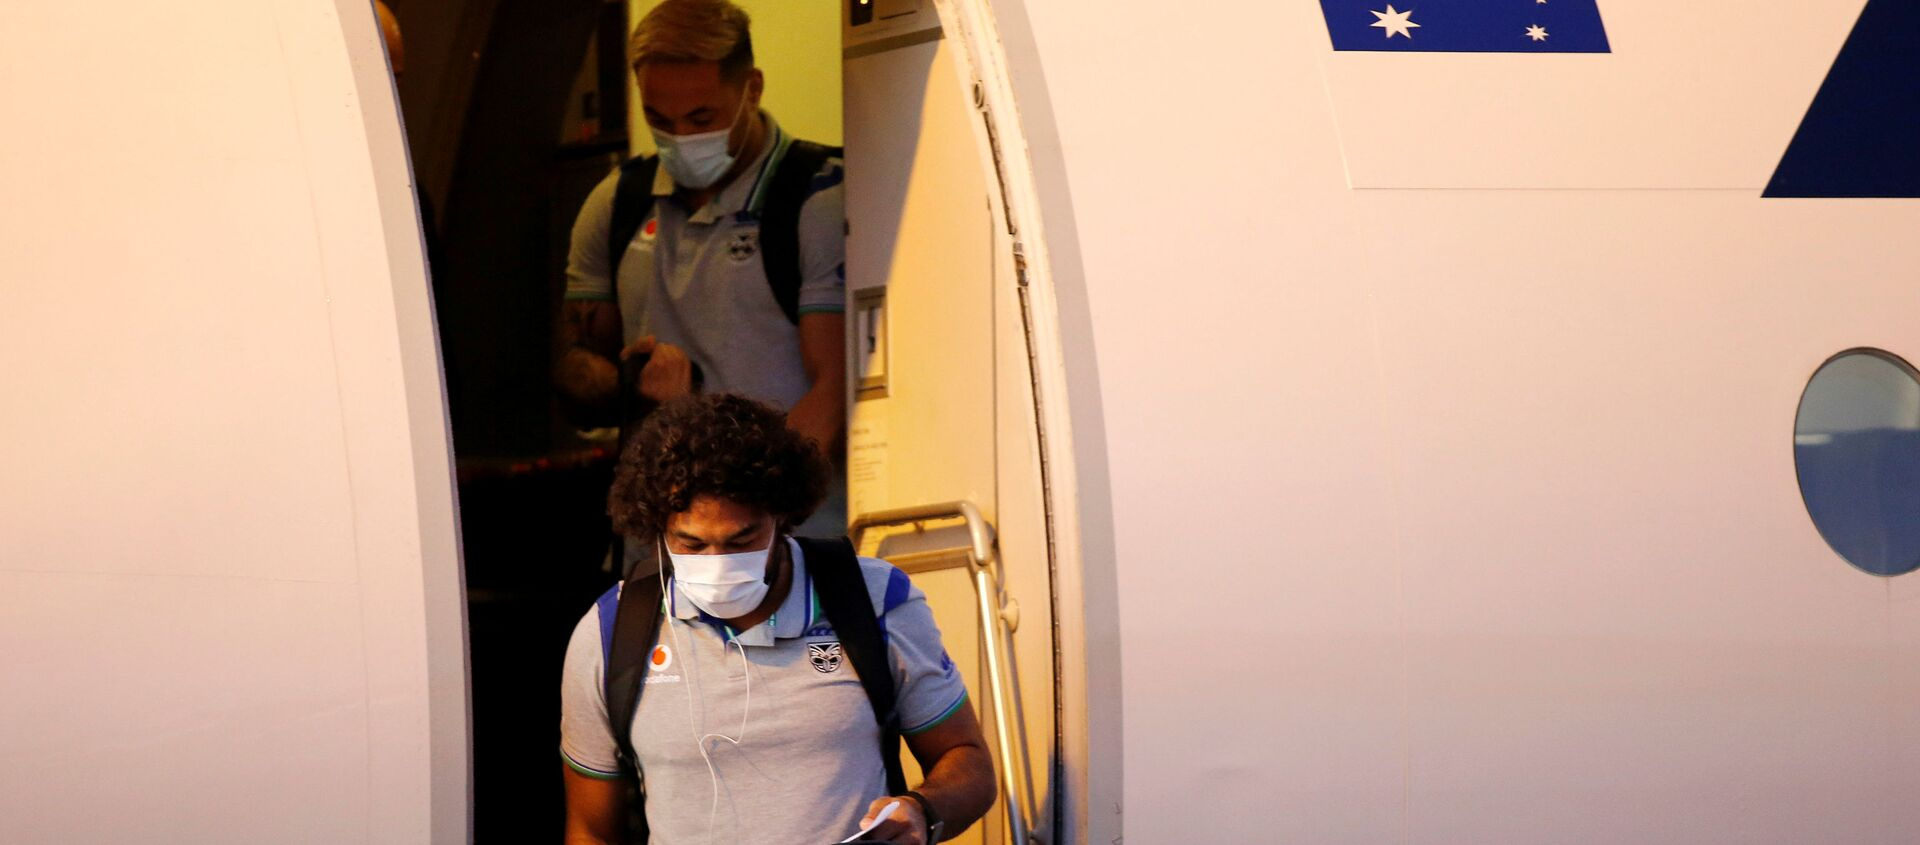 The New Zealand Warriors NRL team, which will live and train in Australia under quarantine conditions due to the coronavirus disease (COVID-19), arrives at the Tamworth Airport in Tamworth, Australia, May 3, 2020. Picture taken May 3, 2020.   - Sputnik International, 1920, 05.05.2020